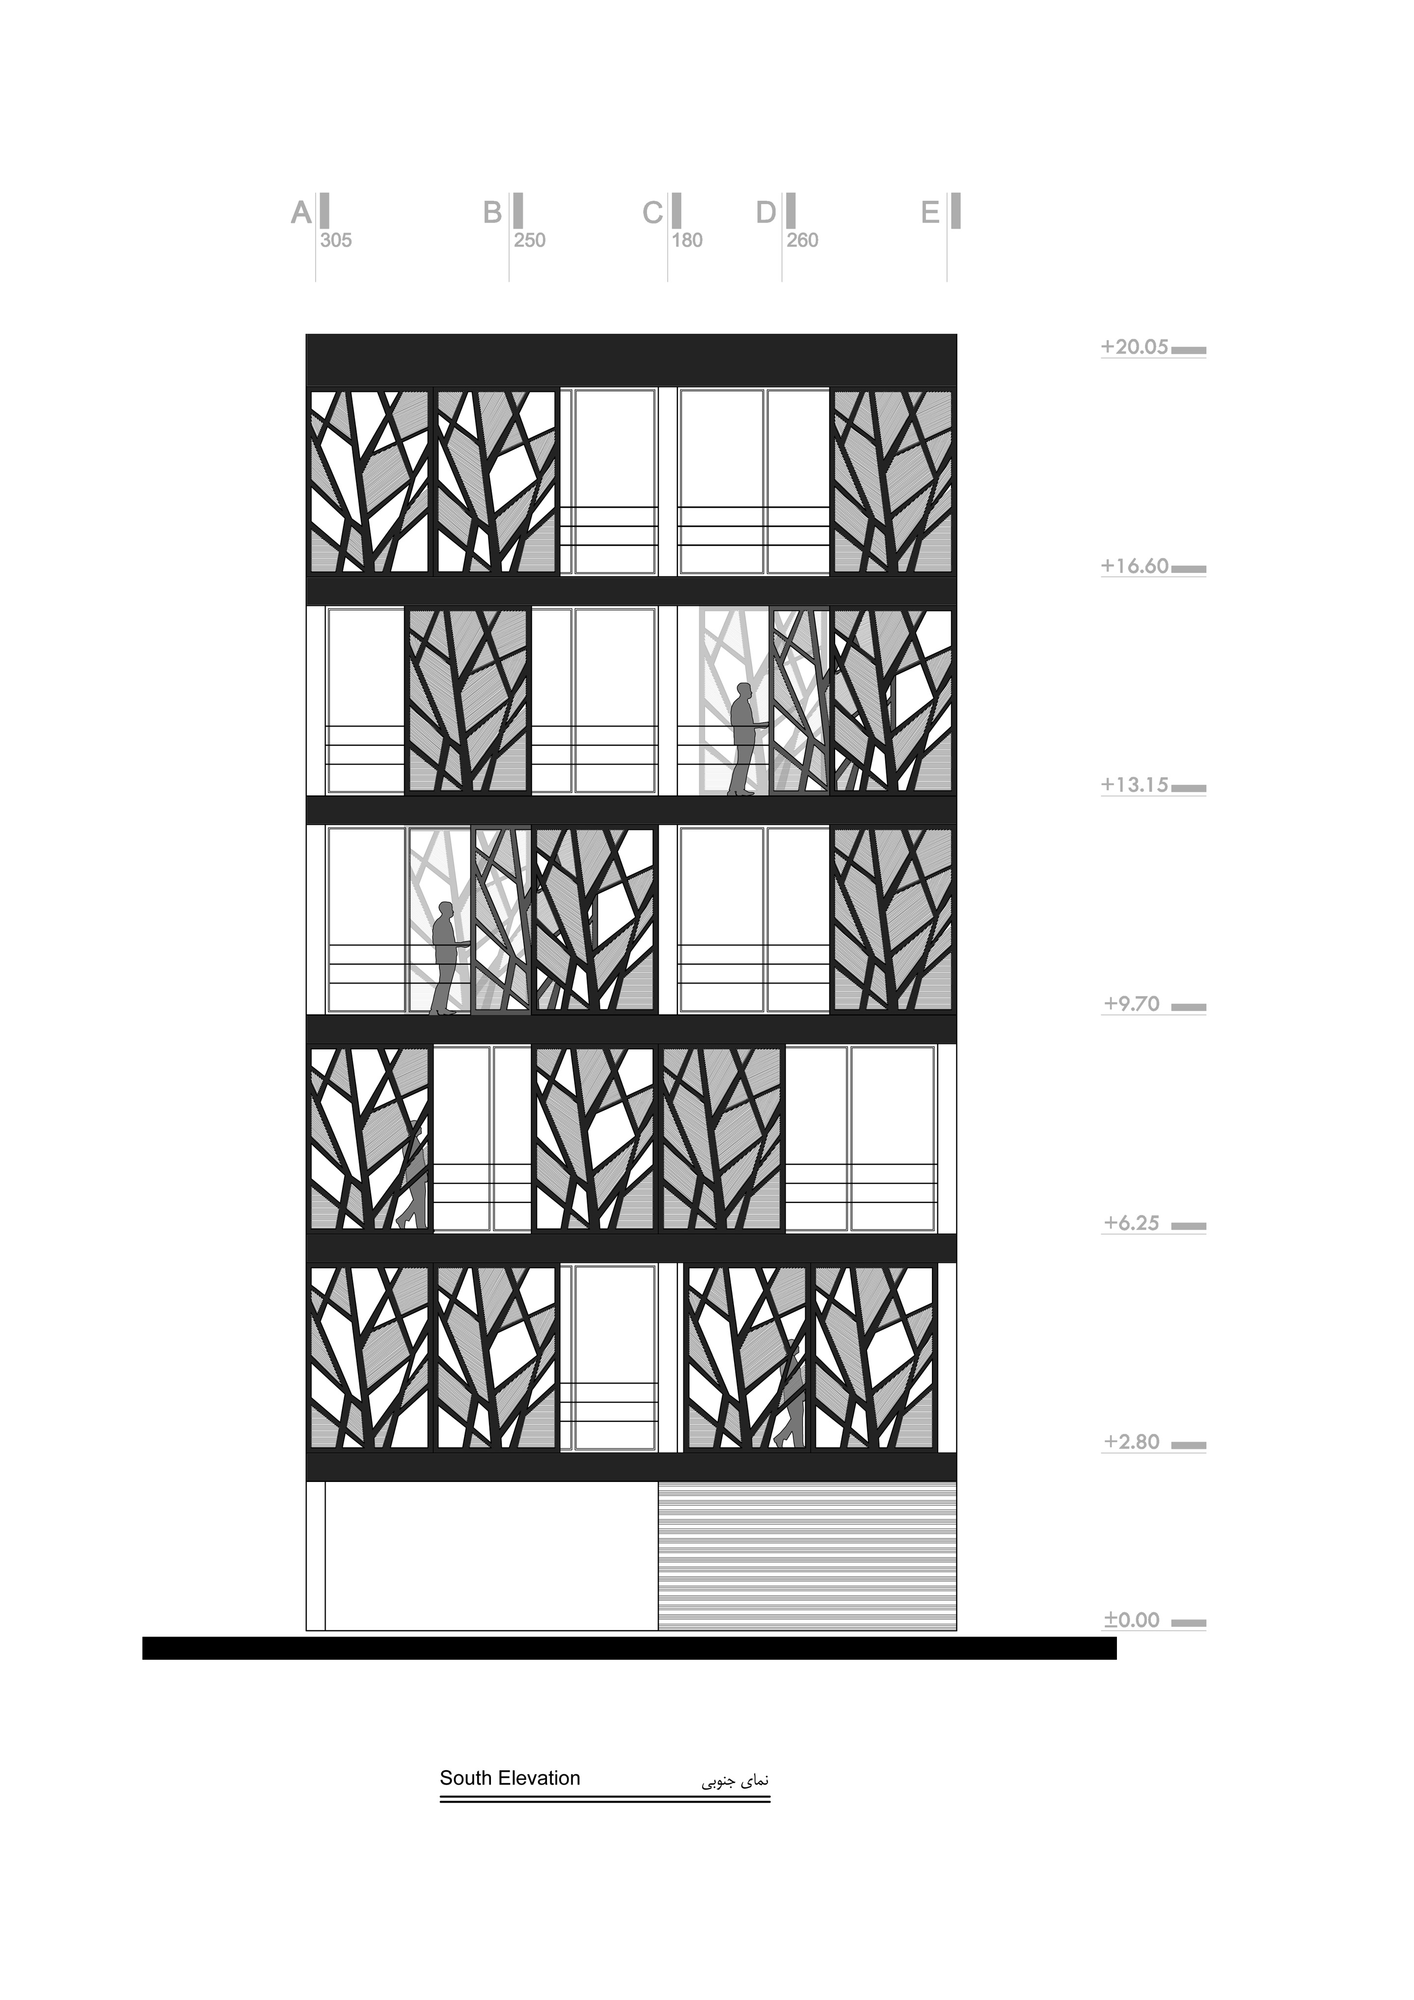 blueprint drawing of the facade of the Designed to Express Our Irrepressible Desire danial building reza sayadian and sara kalantary homesthetics (10)